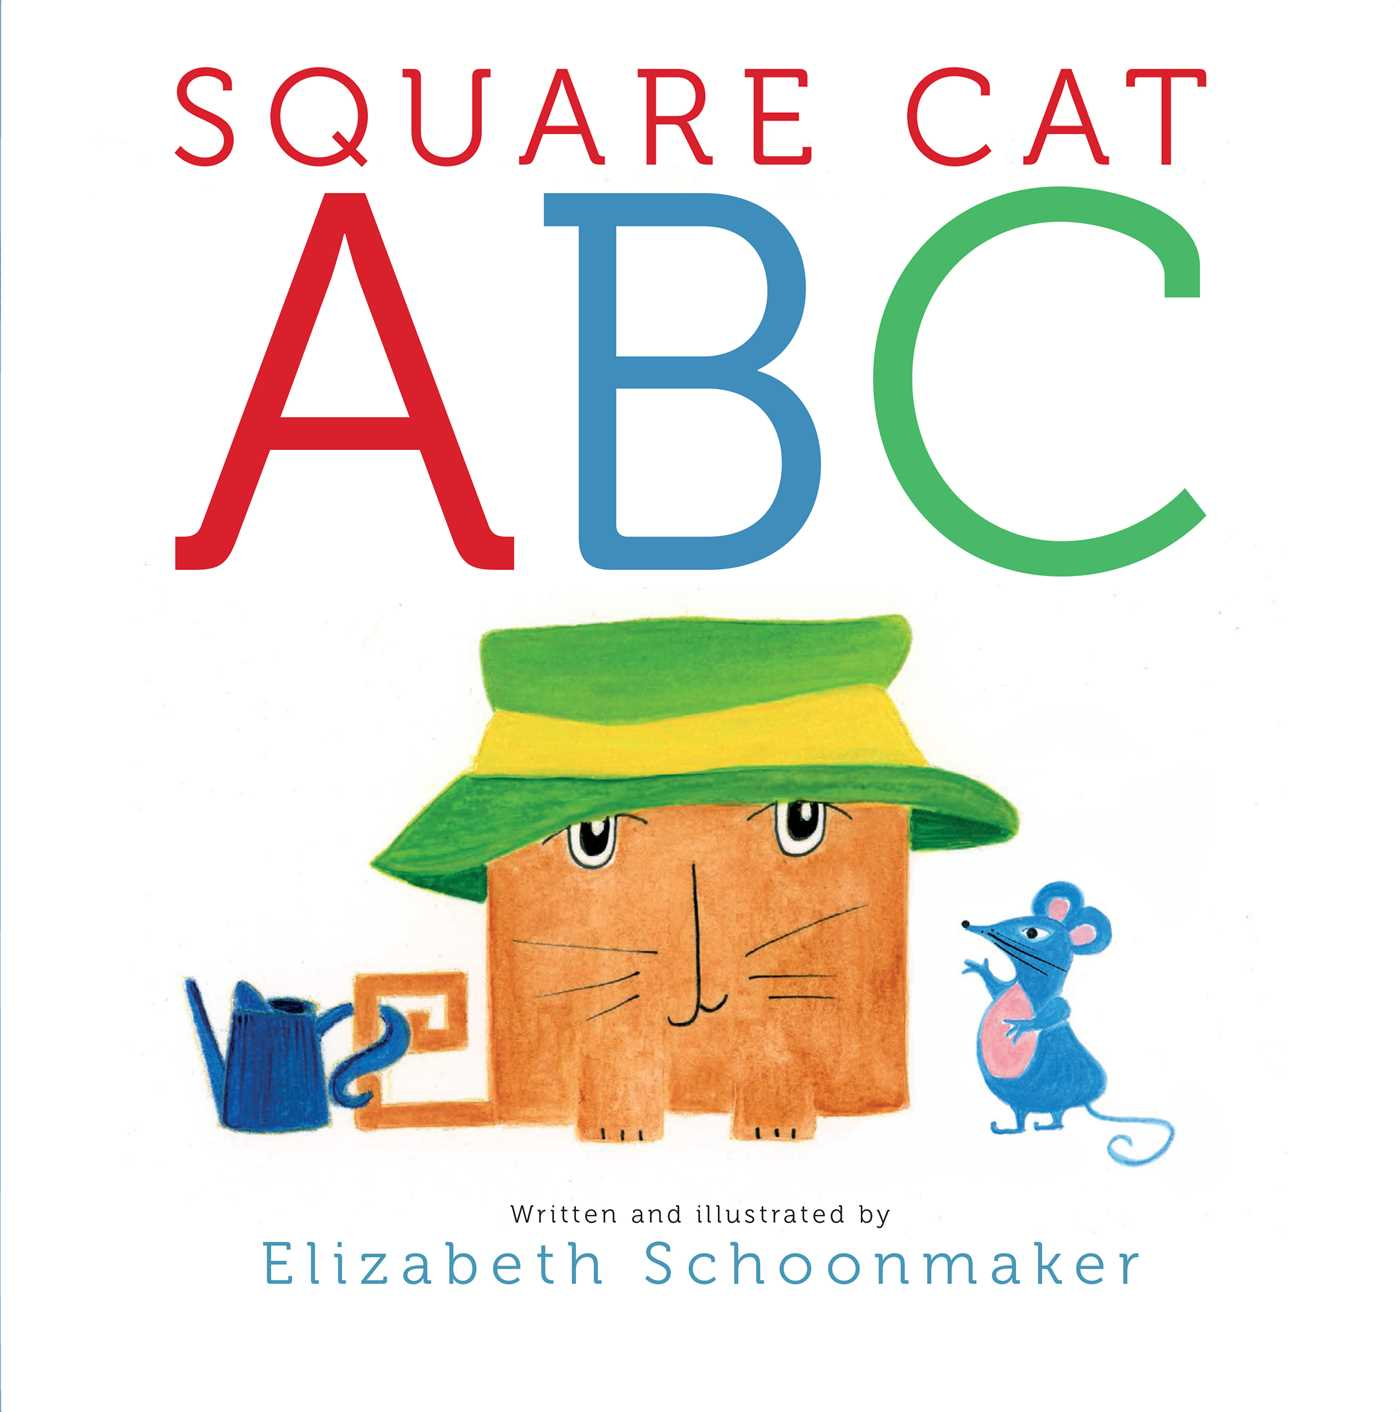 Square-cat-abc-9781442498952_hr